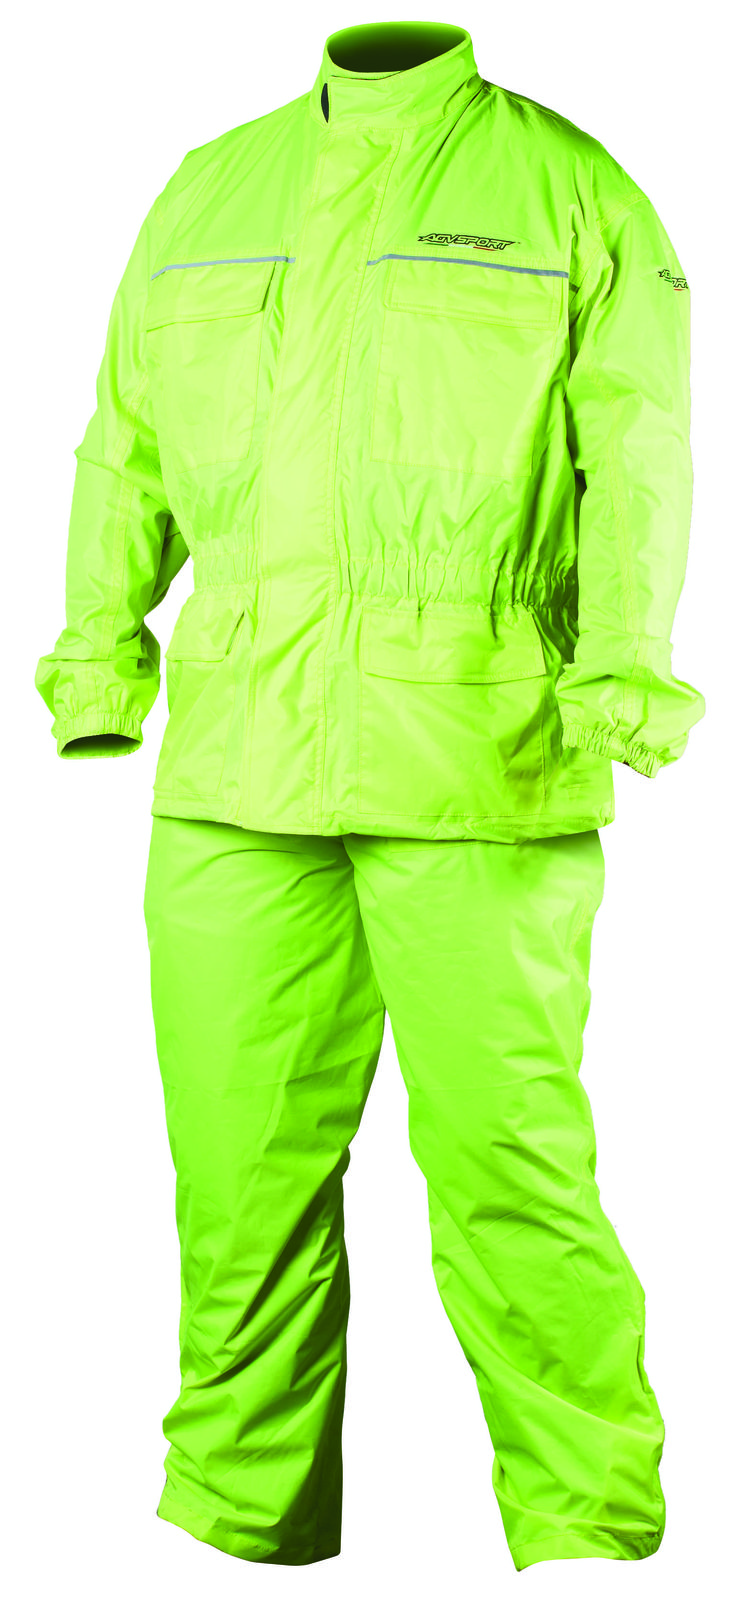 AGVSPORT Thunder 2PC Rain Suit (Hi Viz Yellow) - Size matched jacket and pant are sold together. Constructed from waterproof, Polyurethane backed nylon shell with sealed seam construction. Sized to be worn over riding apparel. Dual wind flap and jacket closure keeps moisture sealed out. Pants include removable suspenders and leg stirrups. Click on the picture for more information!